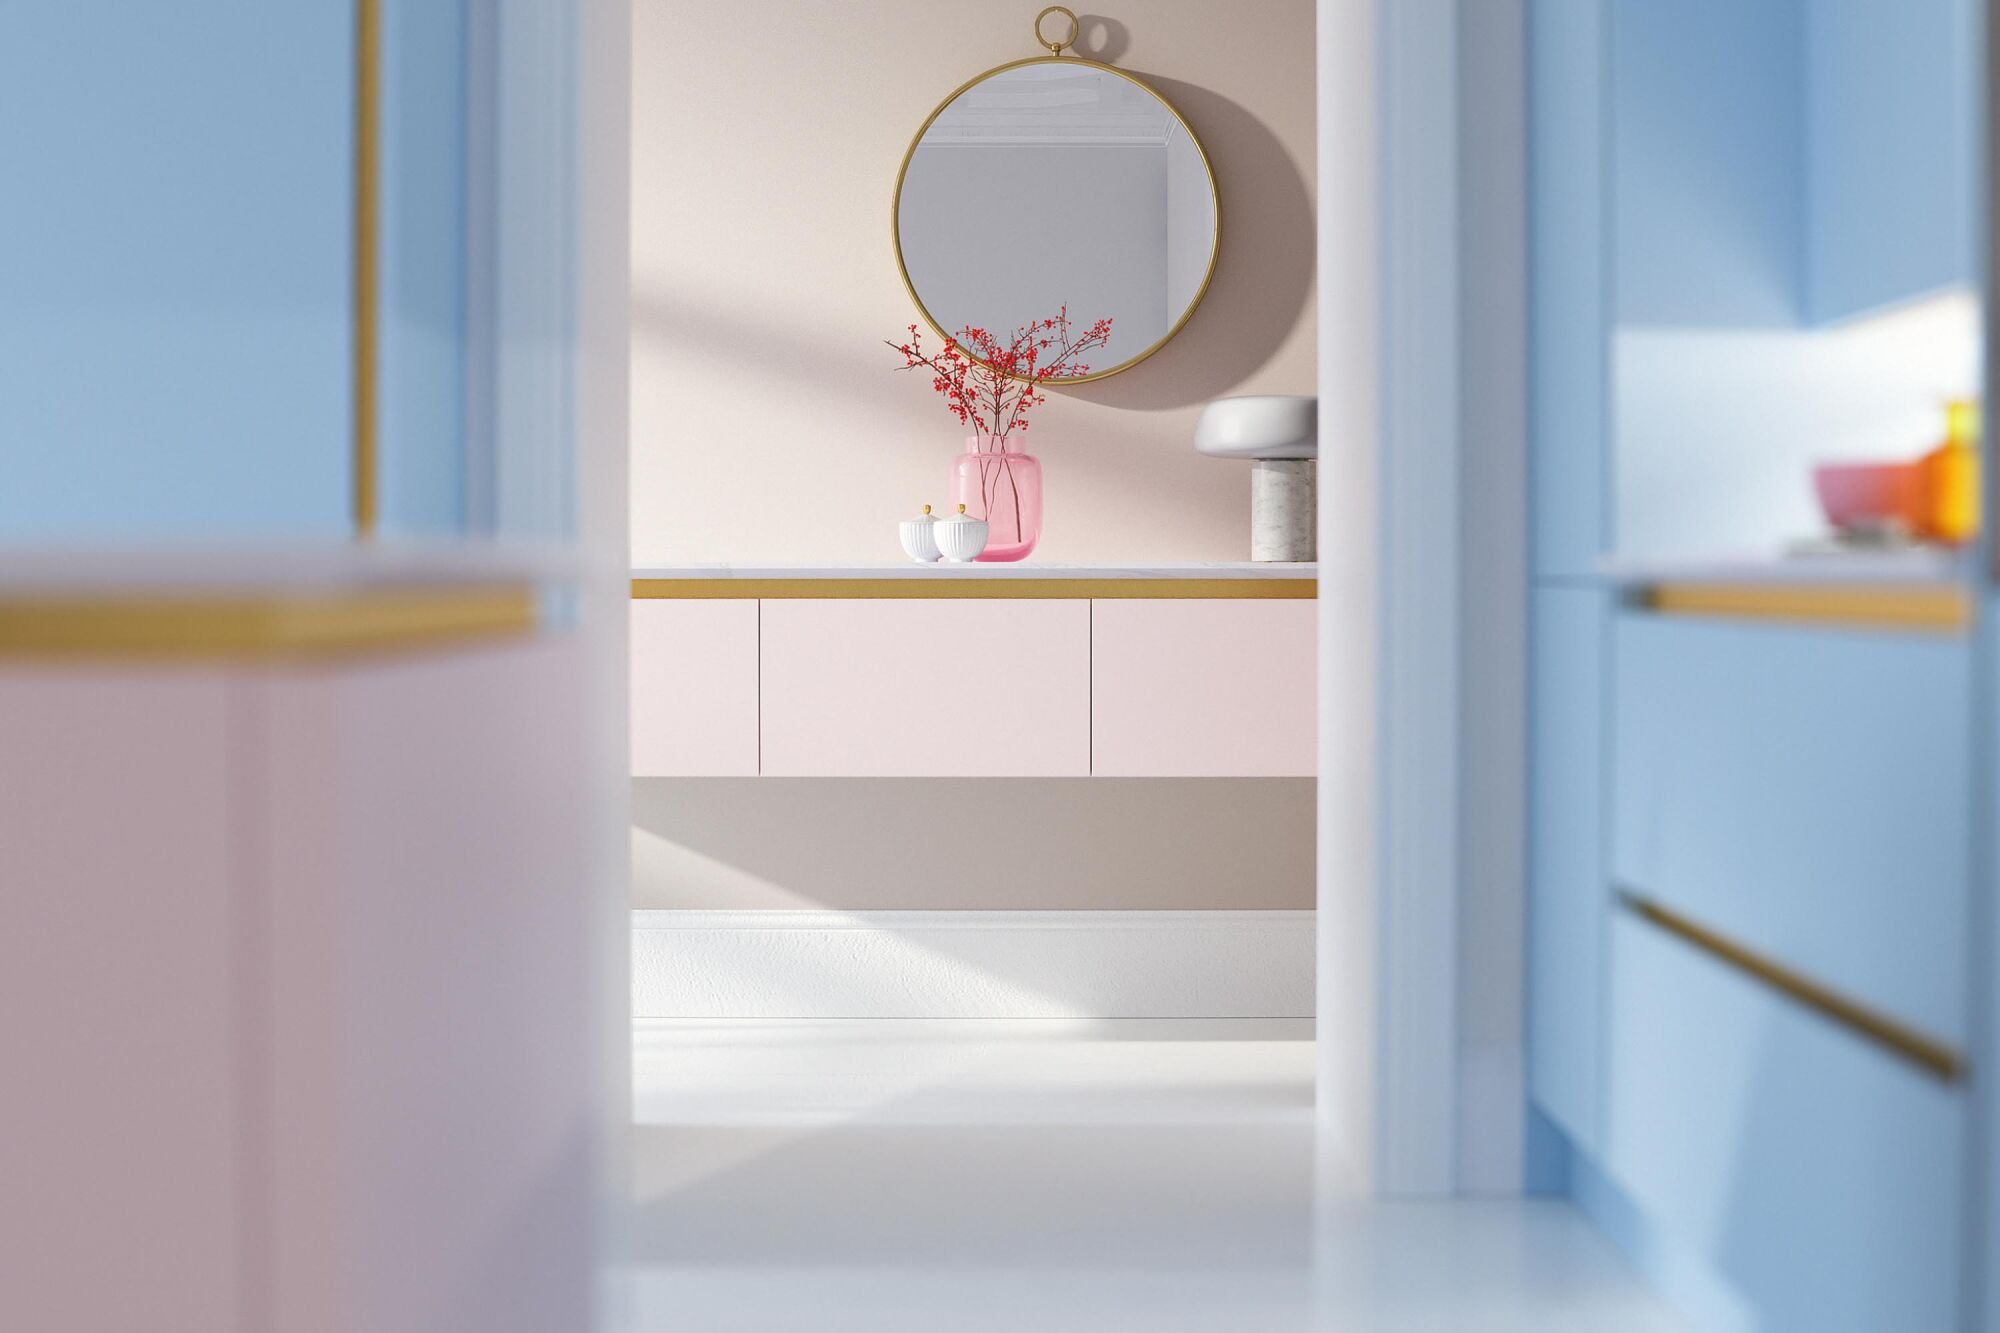 Milano Contour Ermine in Rose Matt kitchen